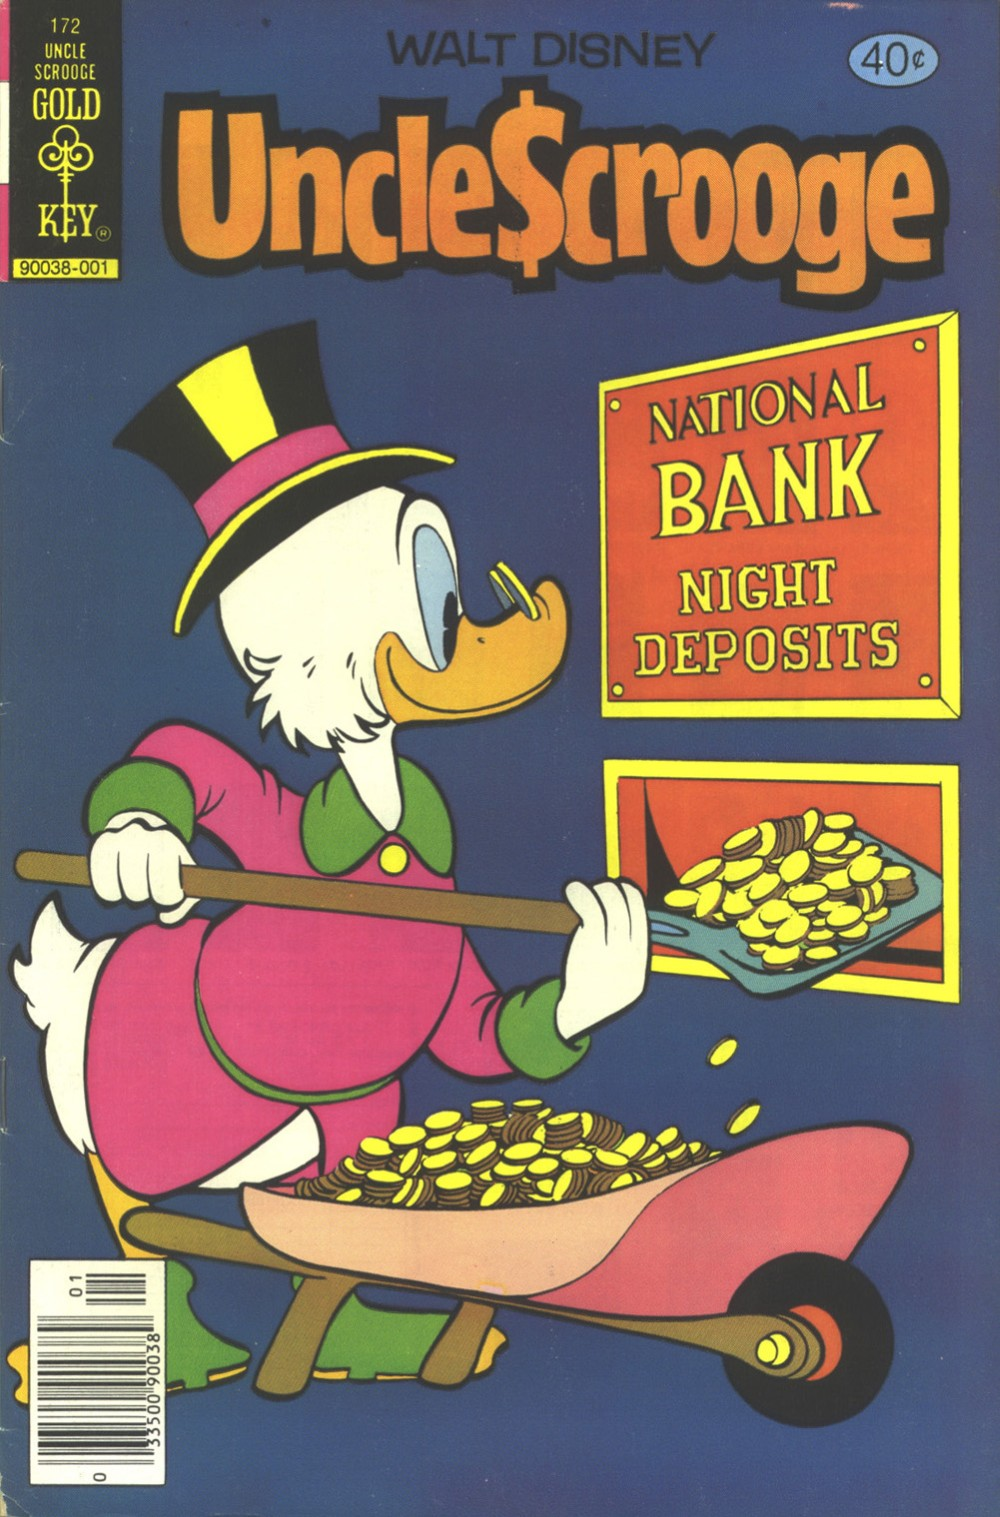 Uncle Scrooge 0172.jpg